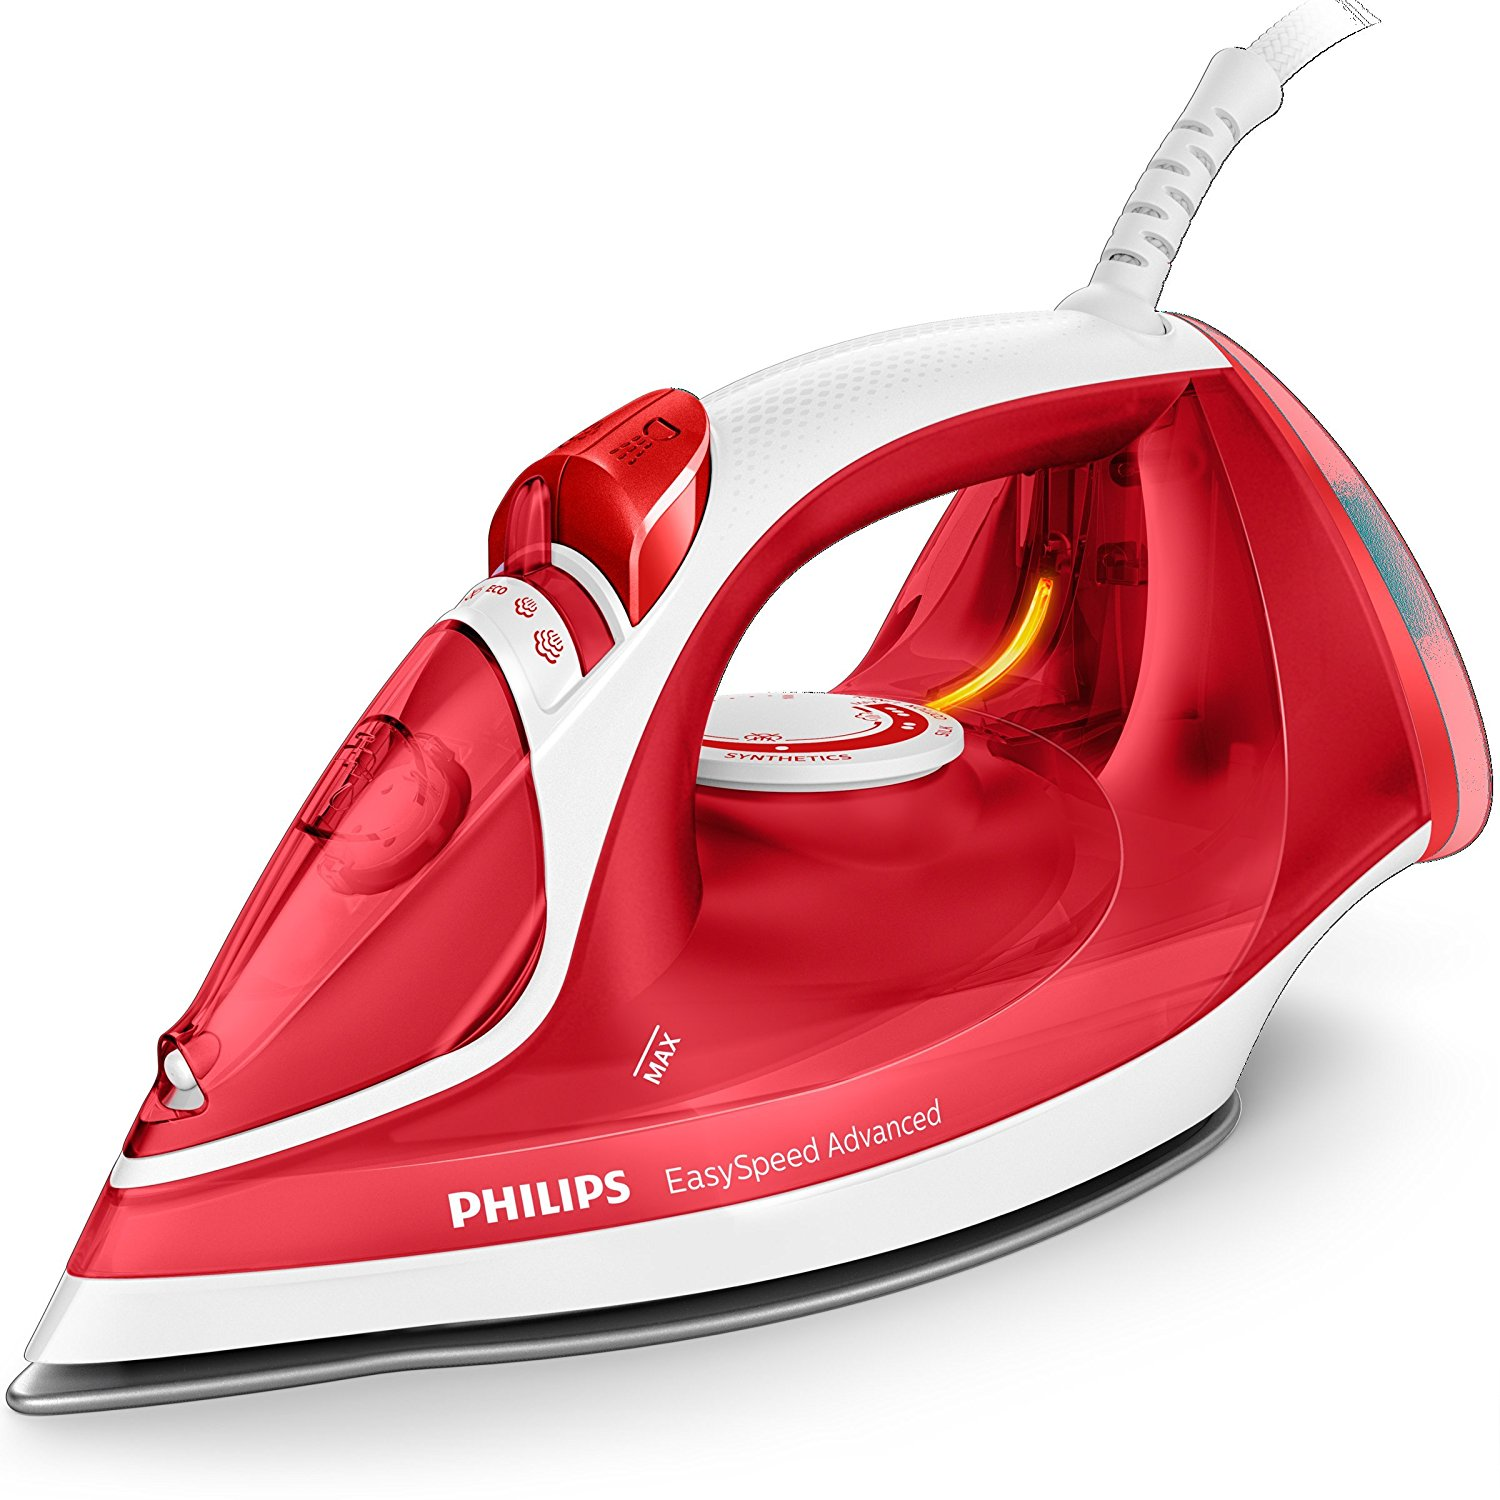 Philips EasySpeed Advanced GC2672/40 Plancha de Vapor, 2300 W precio minimo!